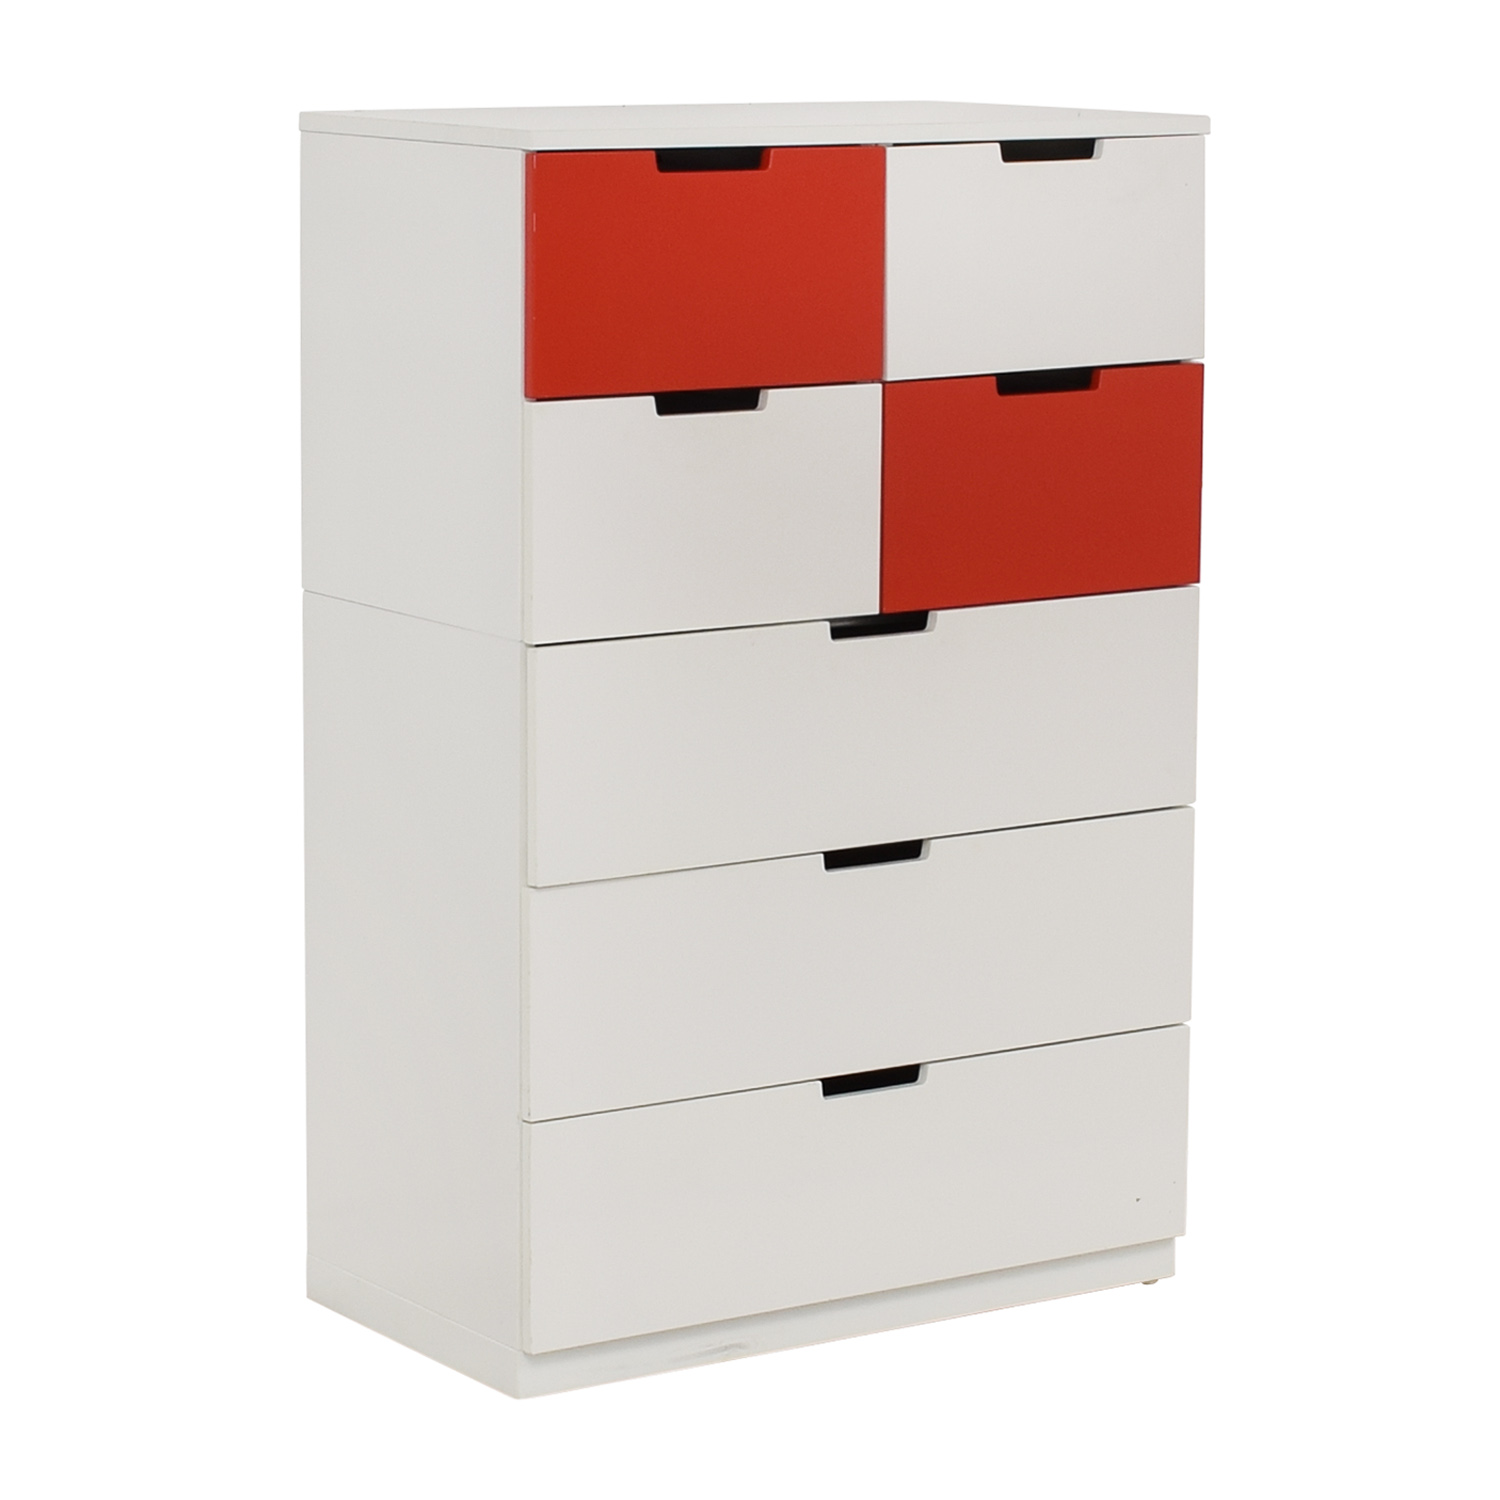 IKEA White and Red Seven-Drawer Unit / Dressers